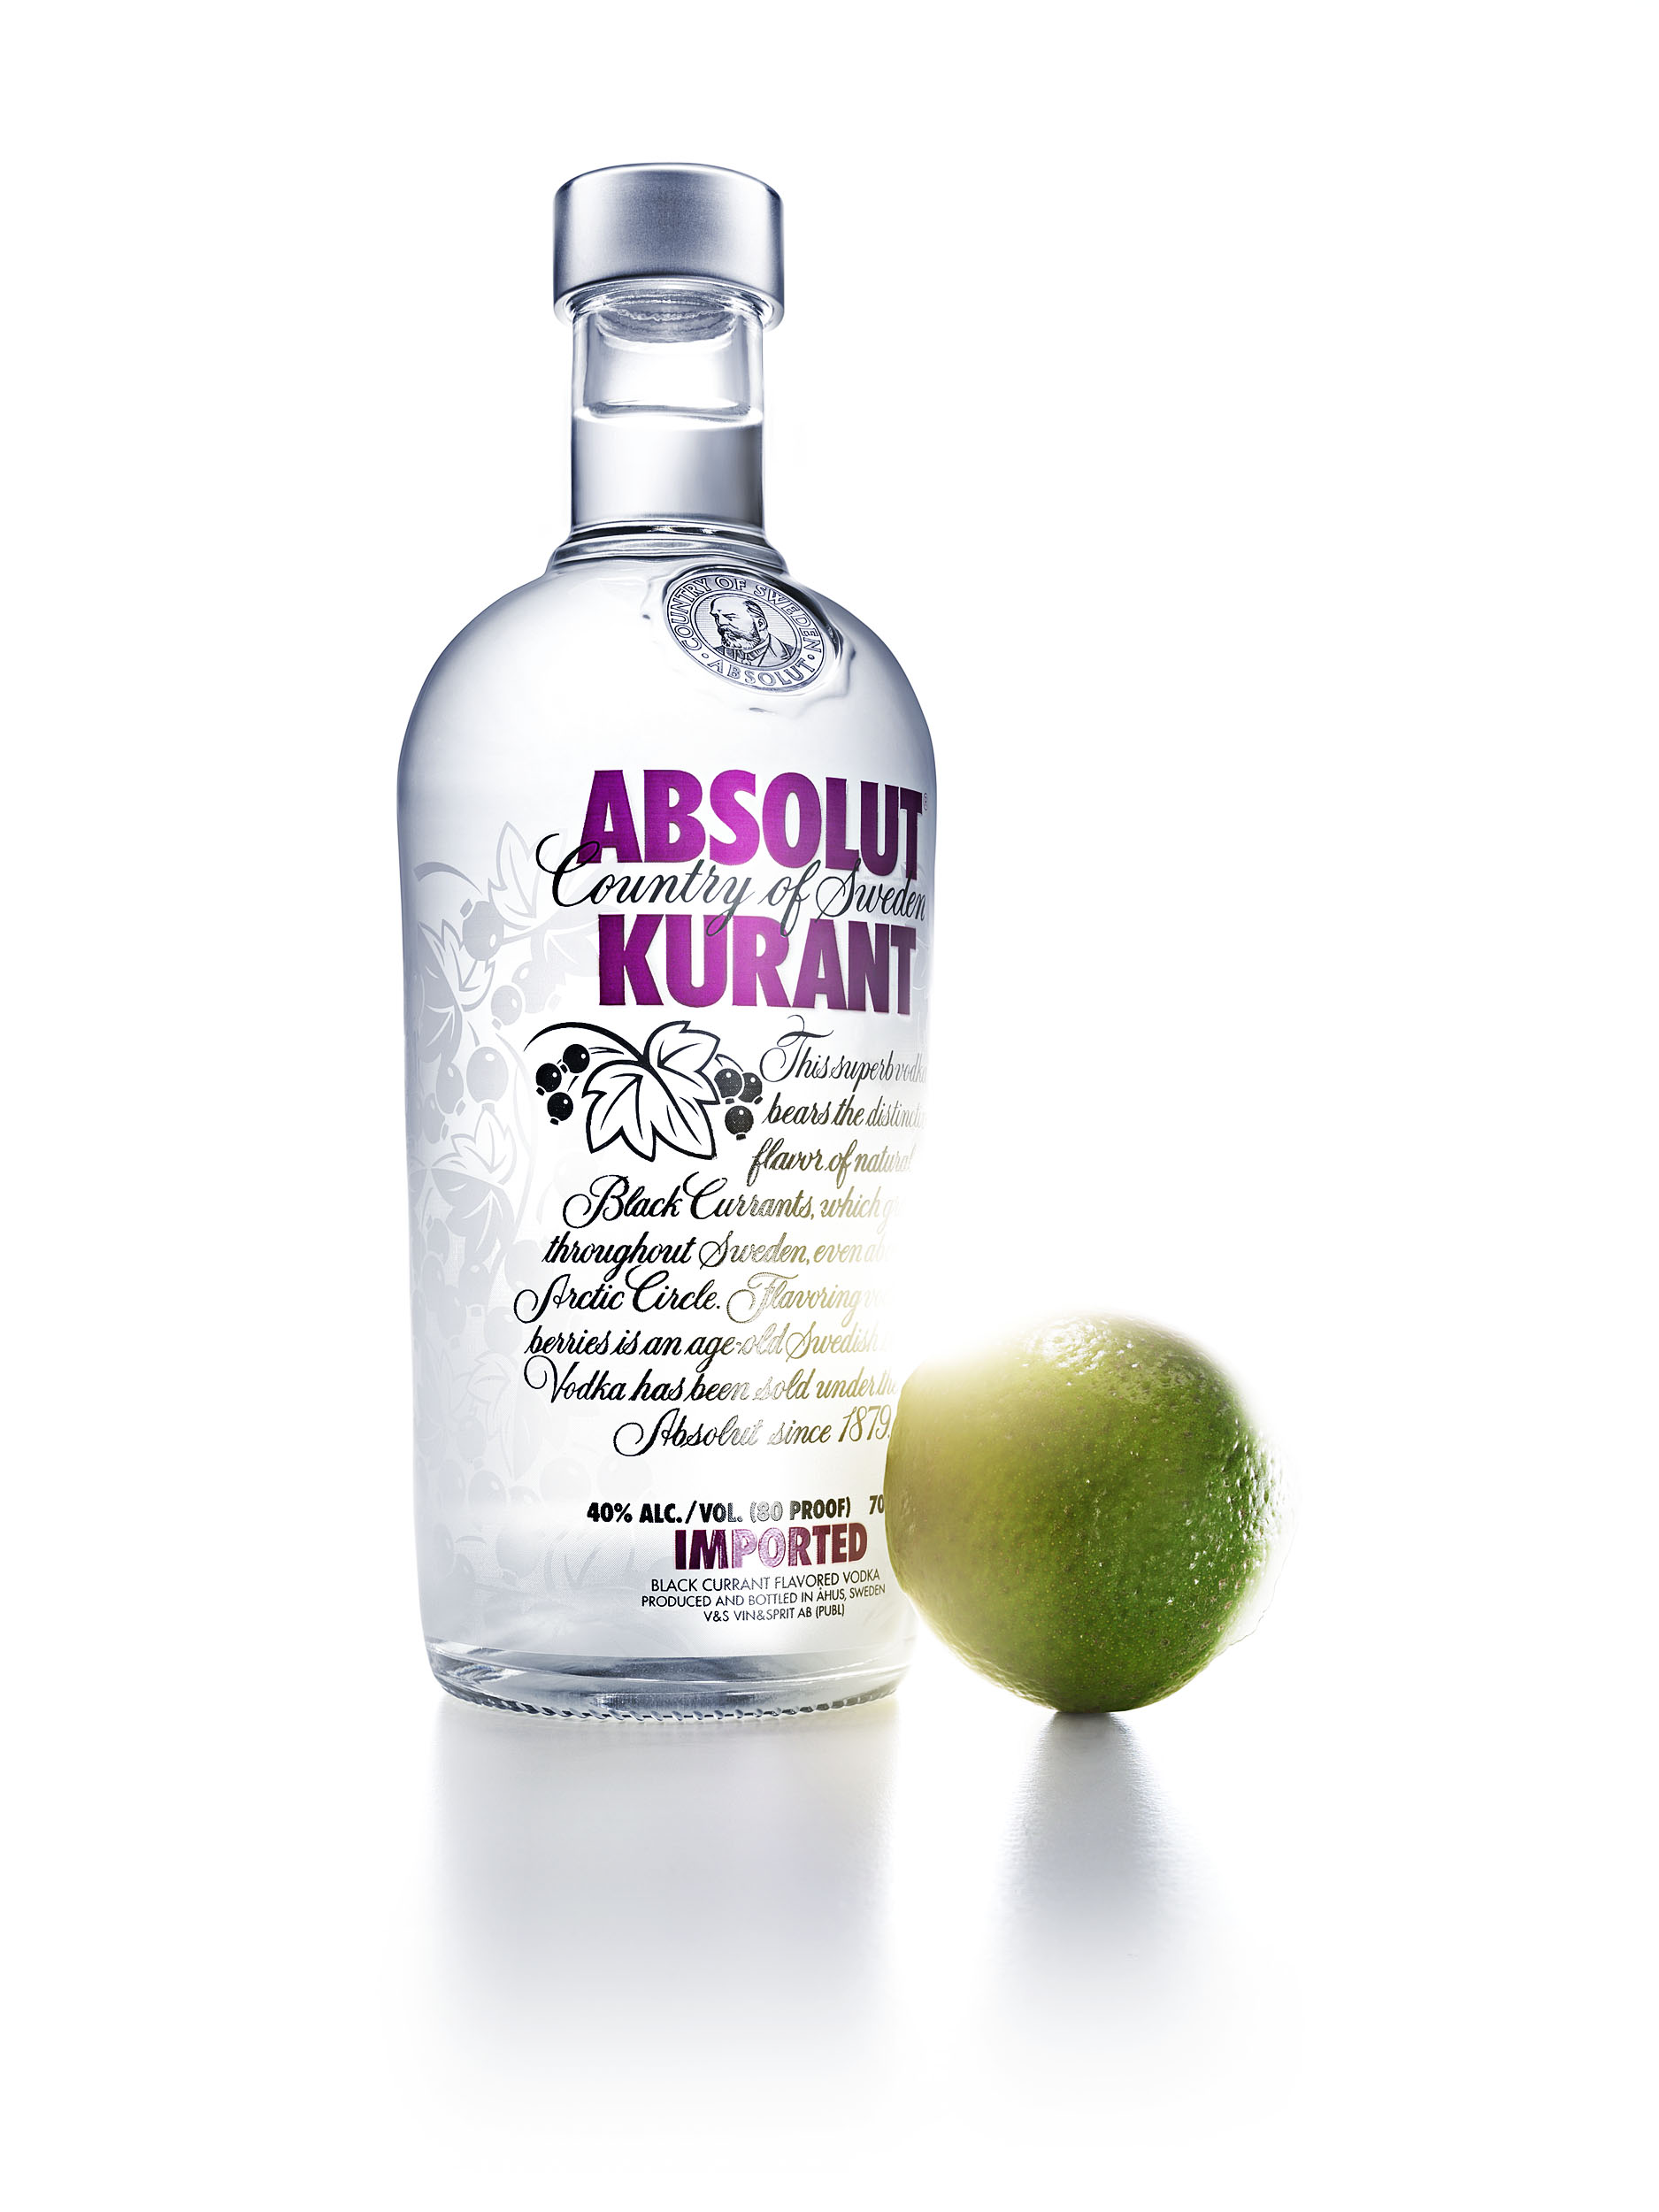 jensmortensen-absolut-vodka-fc0b57ca